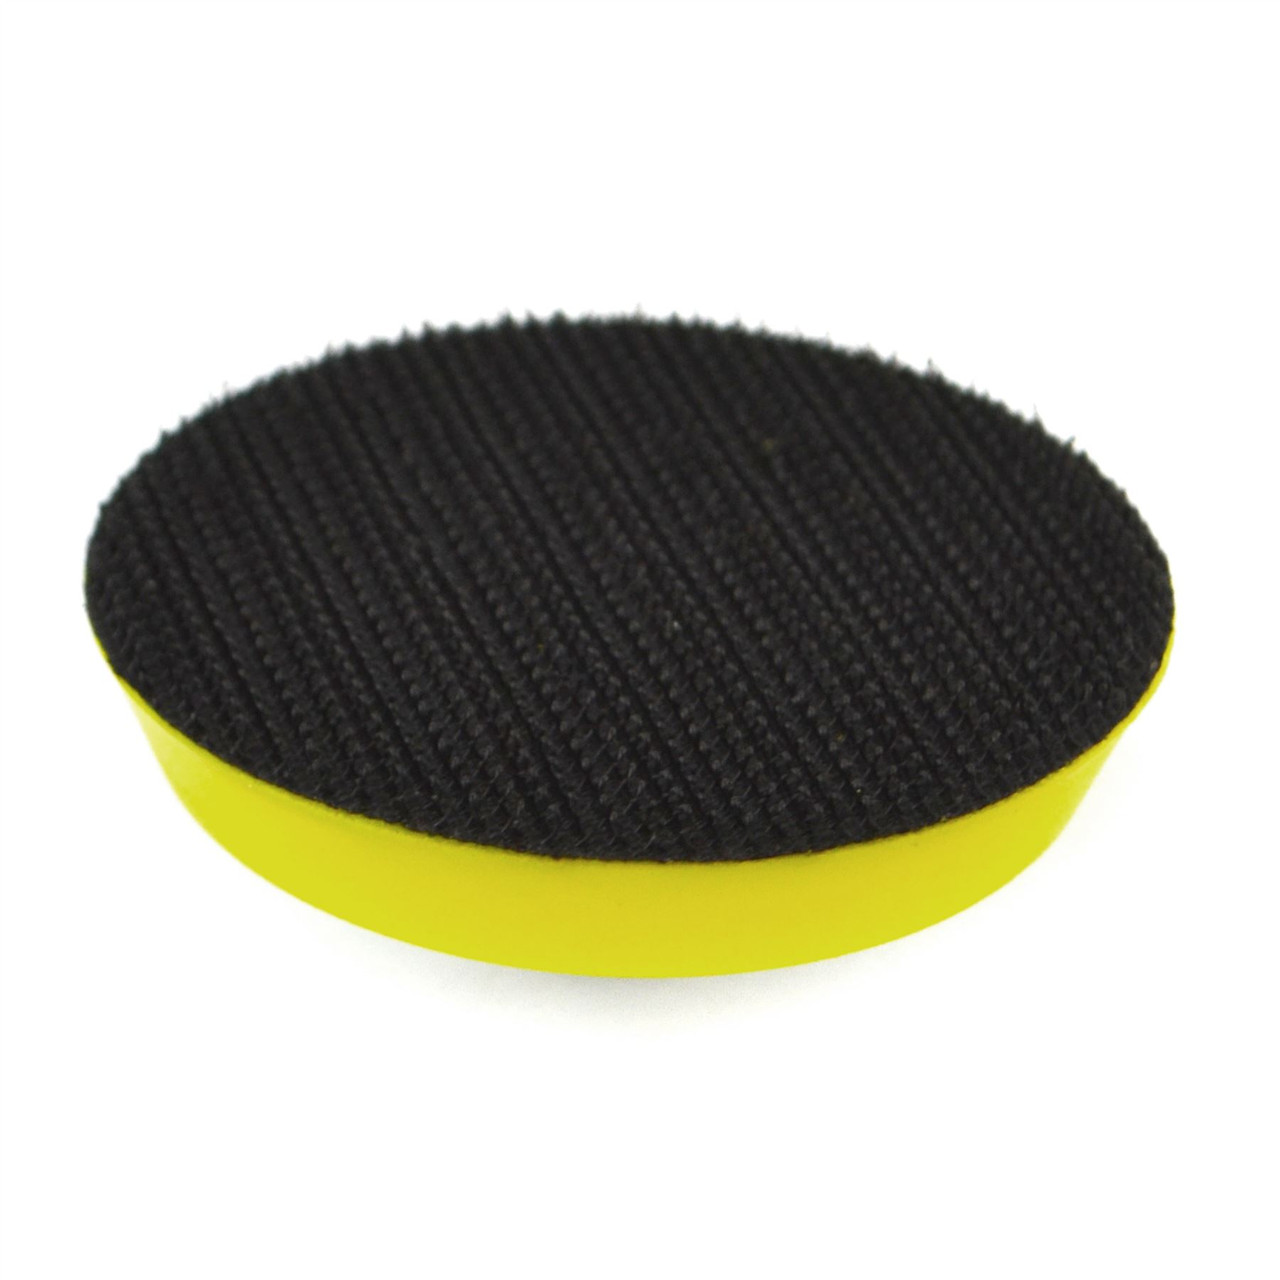 "2"" / 50mm Hook/Loop Sanding Polishing Backing Pad With M6 Thread For Air Sander"